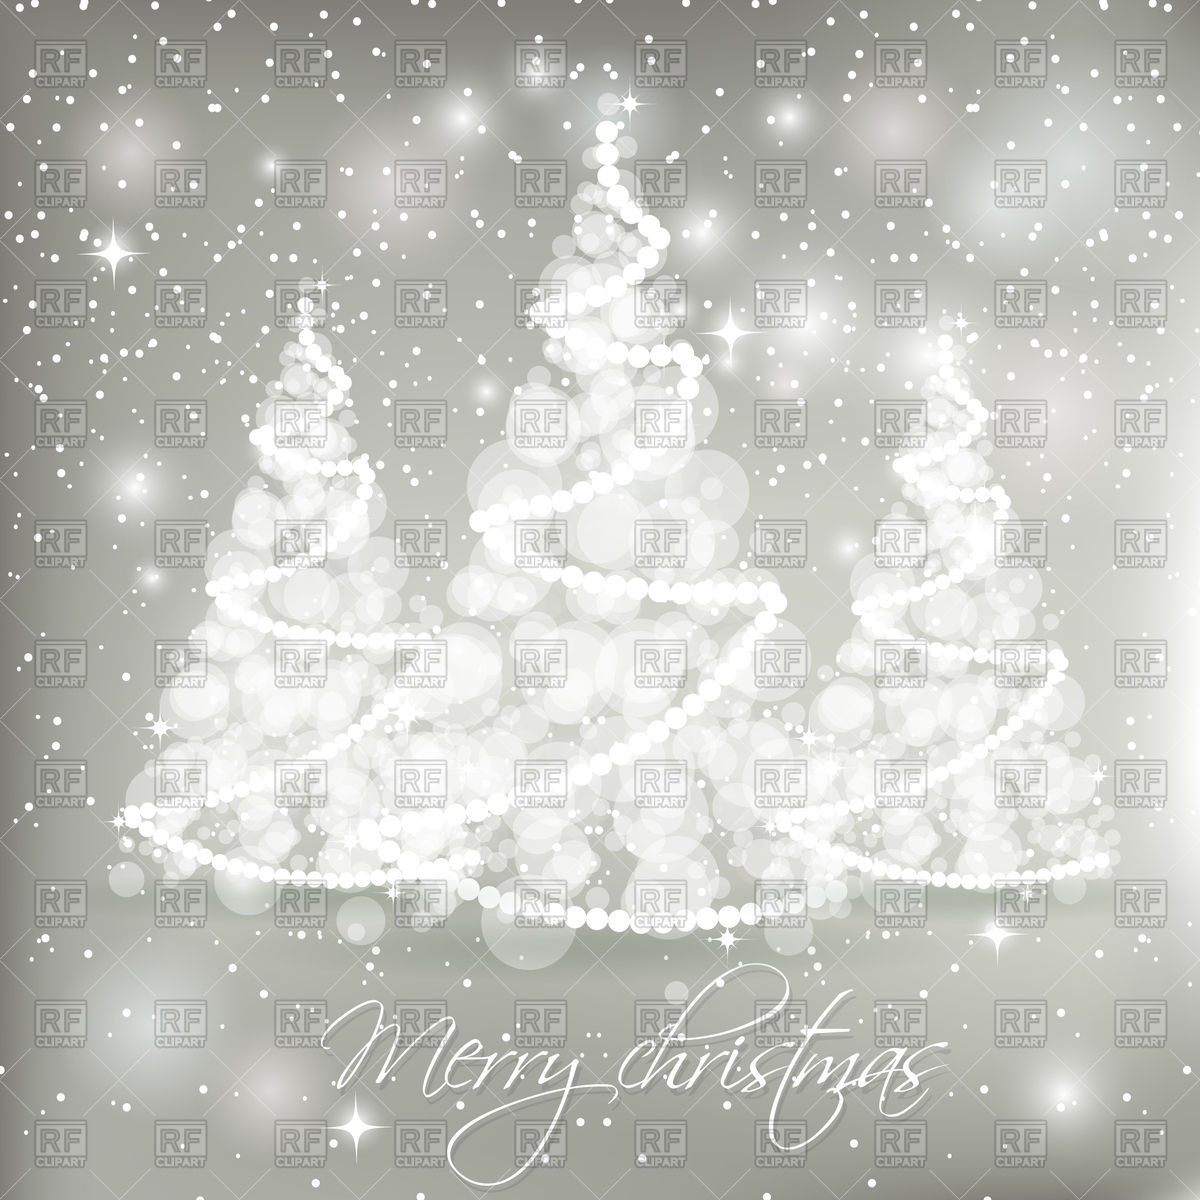 1200x1200 - Christmas Trees Backgrounds 42